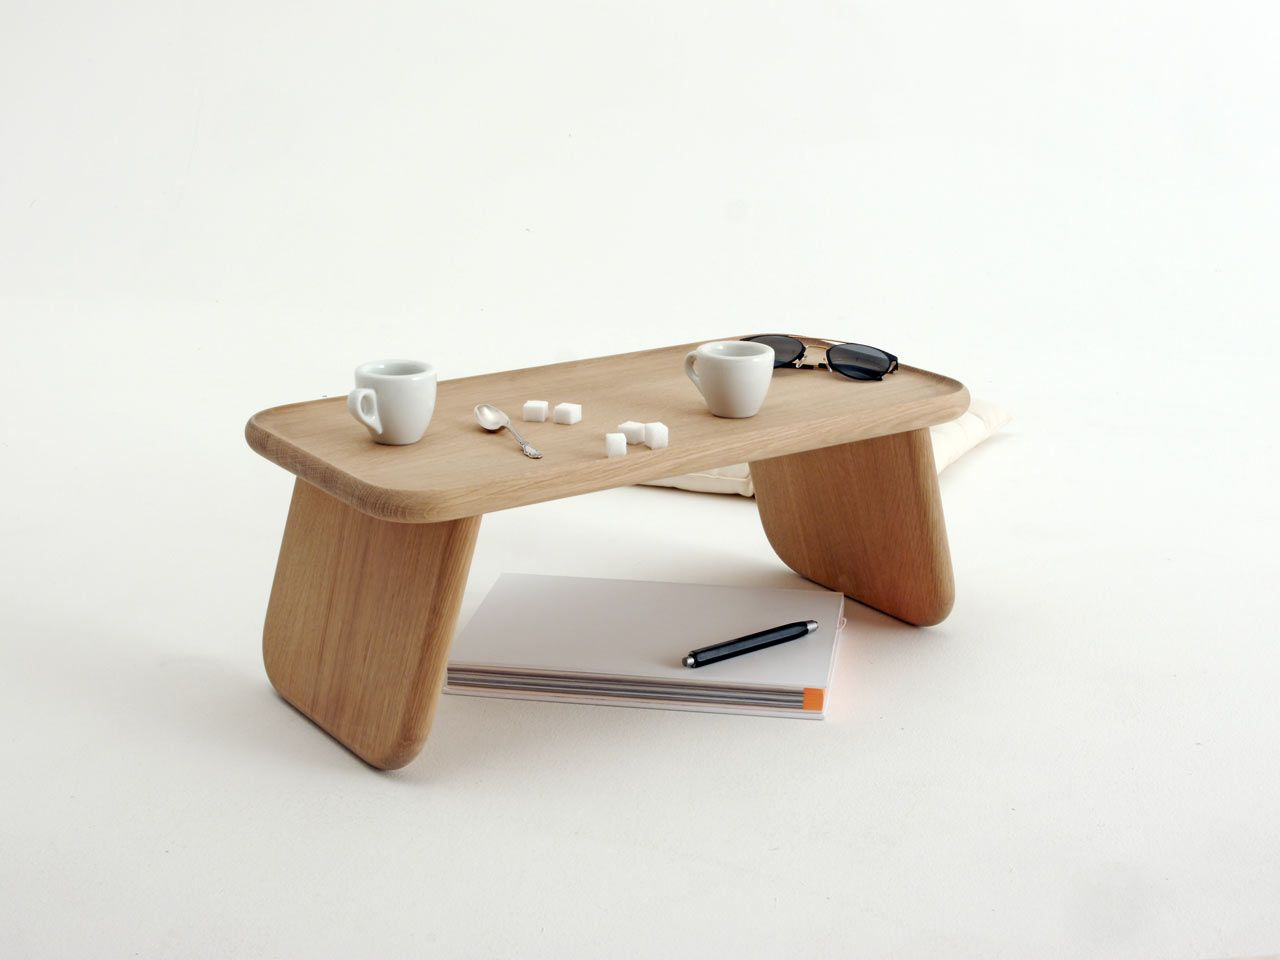 Bento Tray Low Stacking Tables Inspired By Asian Floor Culture Coffee Table Design Low Coffee Table Furniture Design Modern